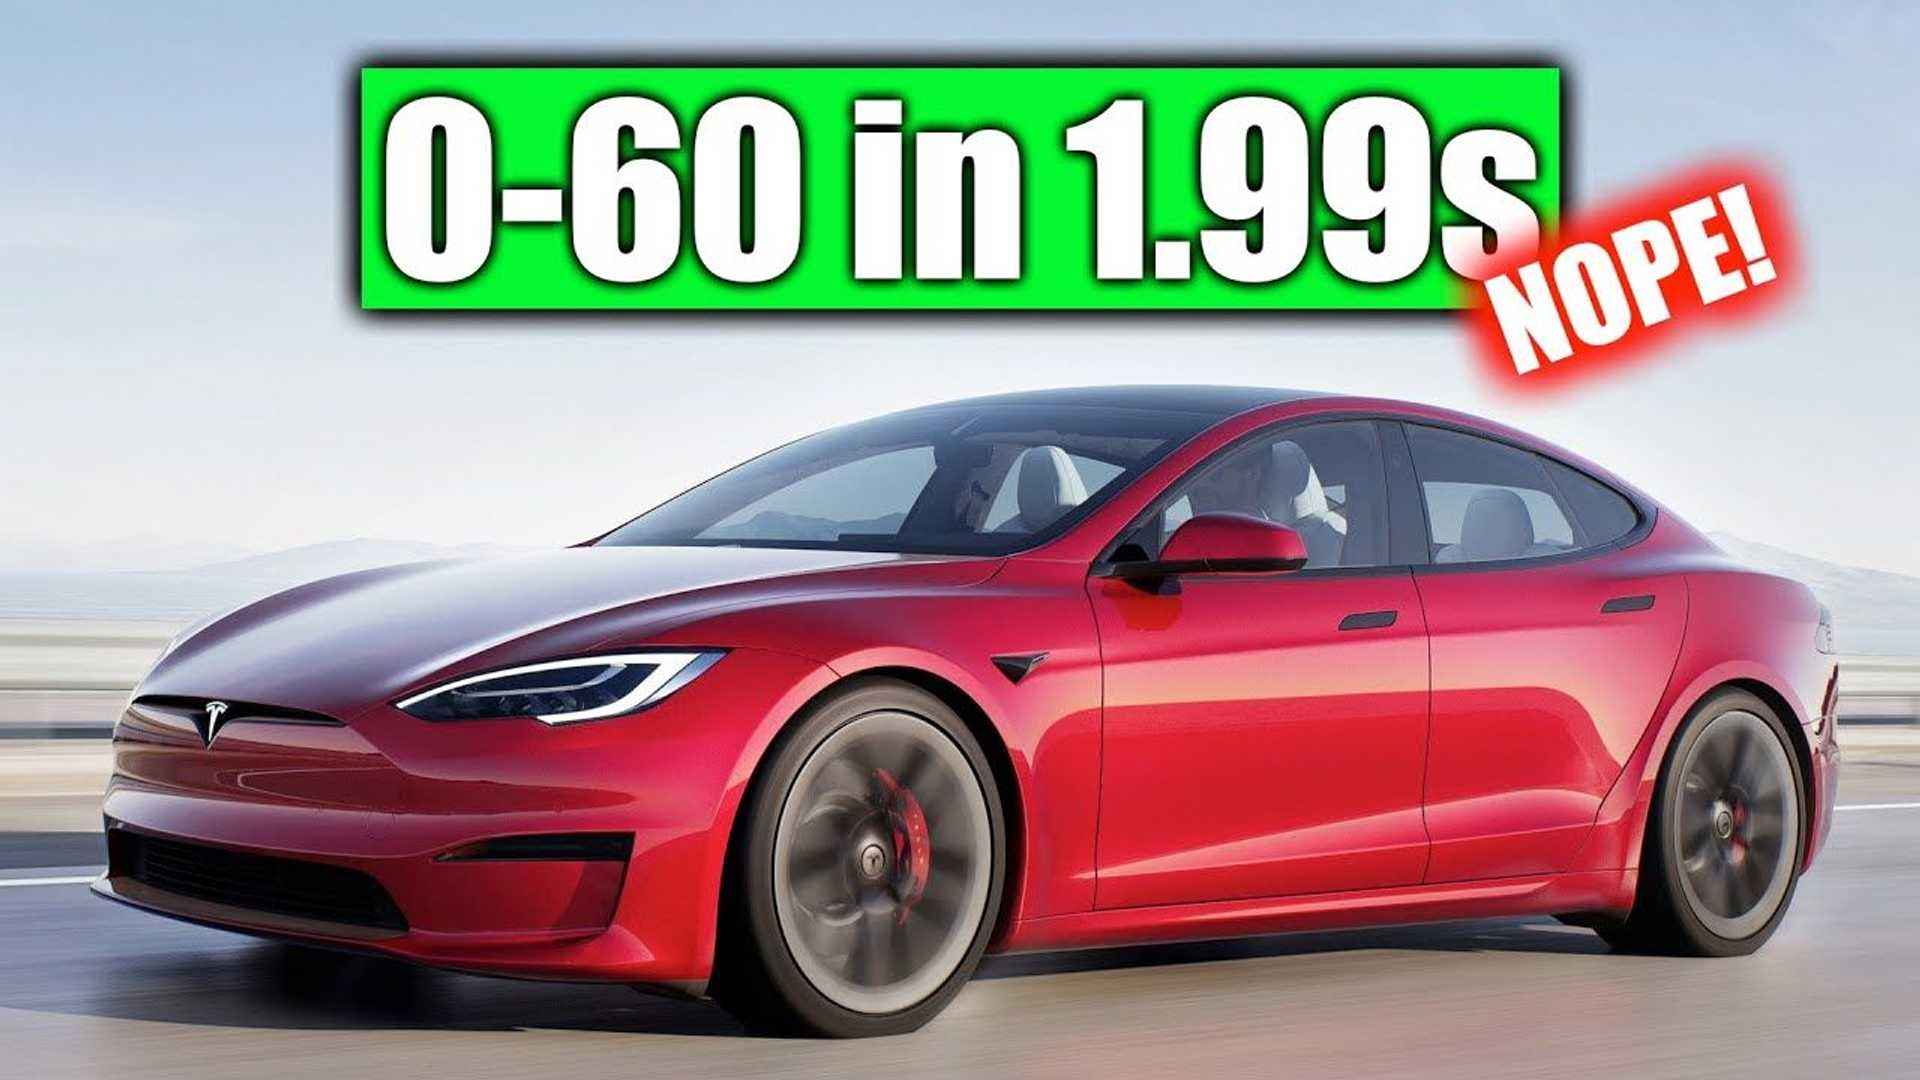 Engineering Explained: No, Model S Plaid Can't Hit 60 MPH In Under 2 Seconds